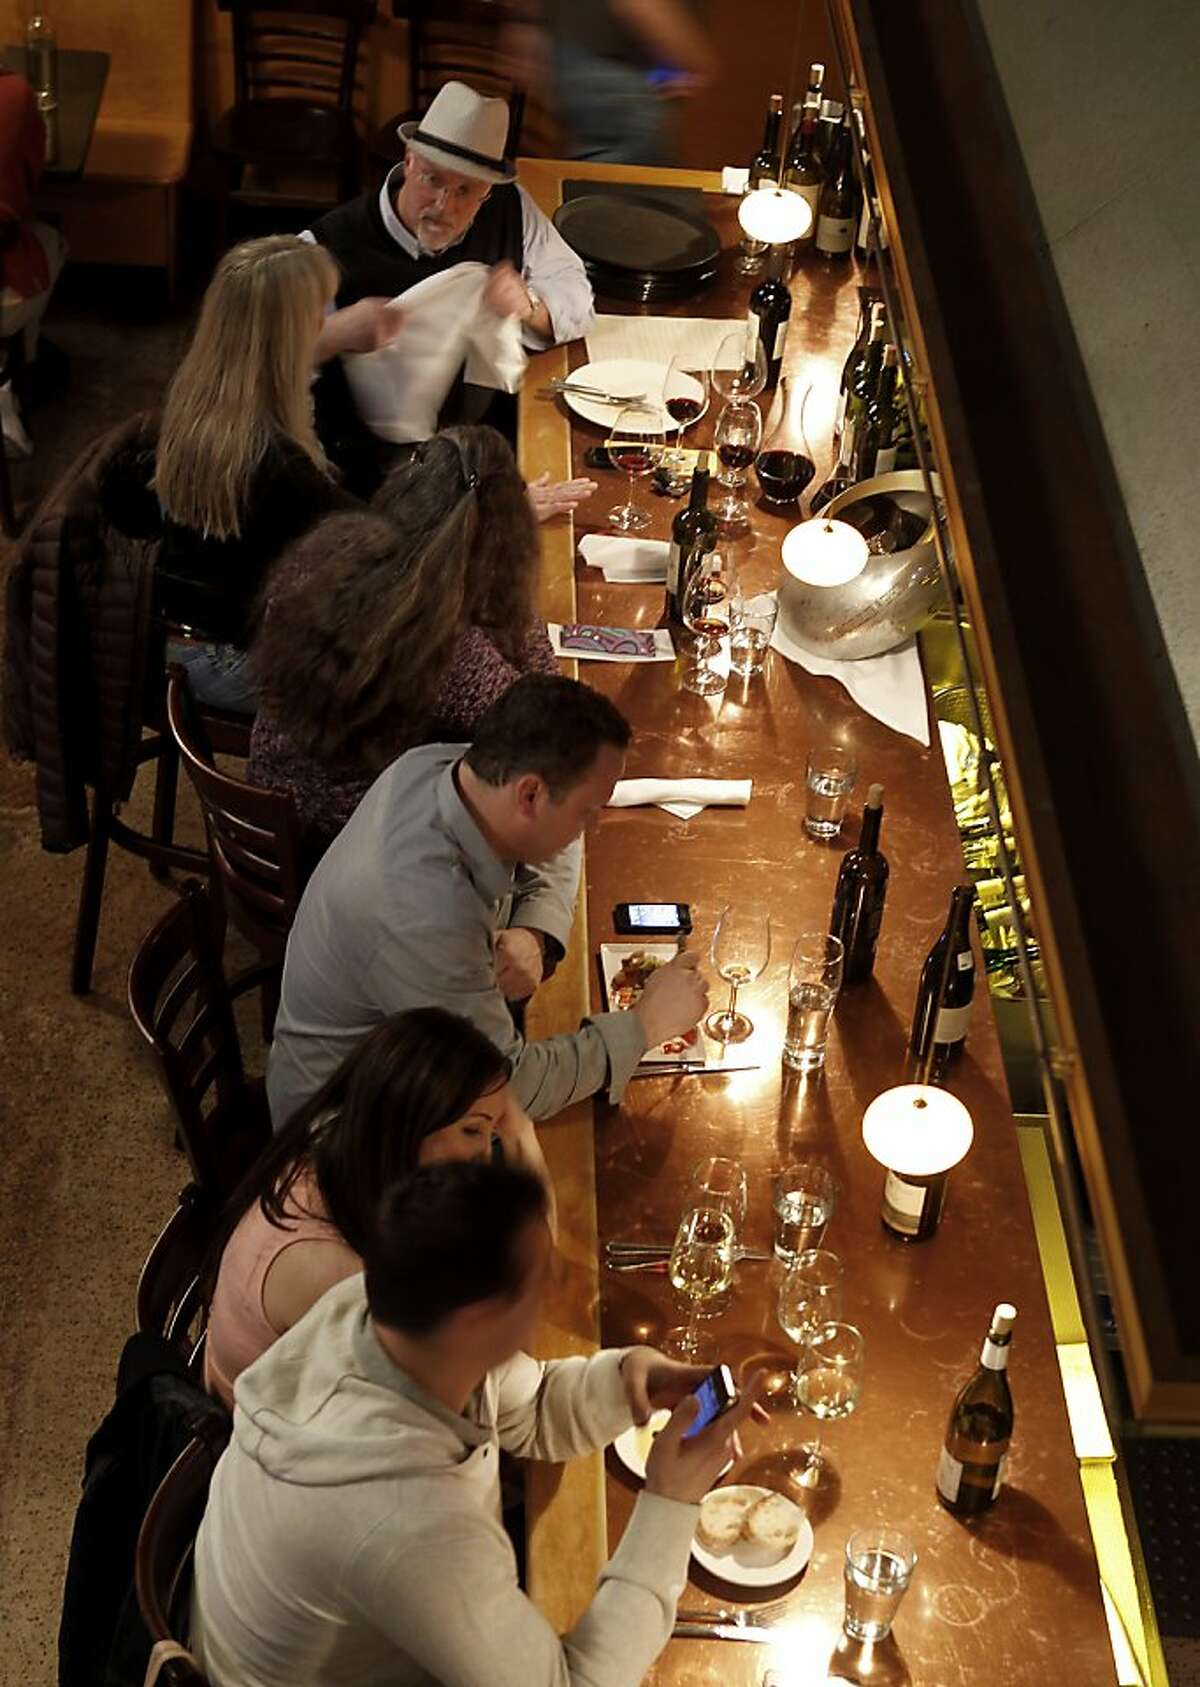 At Soif in downtown Santa Cruz, a wine bar is right next to the dining area. Restaurants in the Santa Cruz area selected include Le Cigare Volant, La Posta, Soif, Au Midi and Gayle's Bakery.